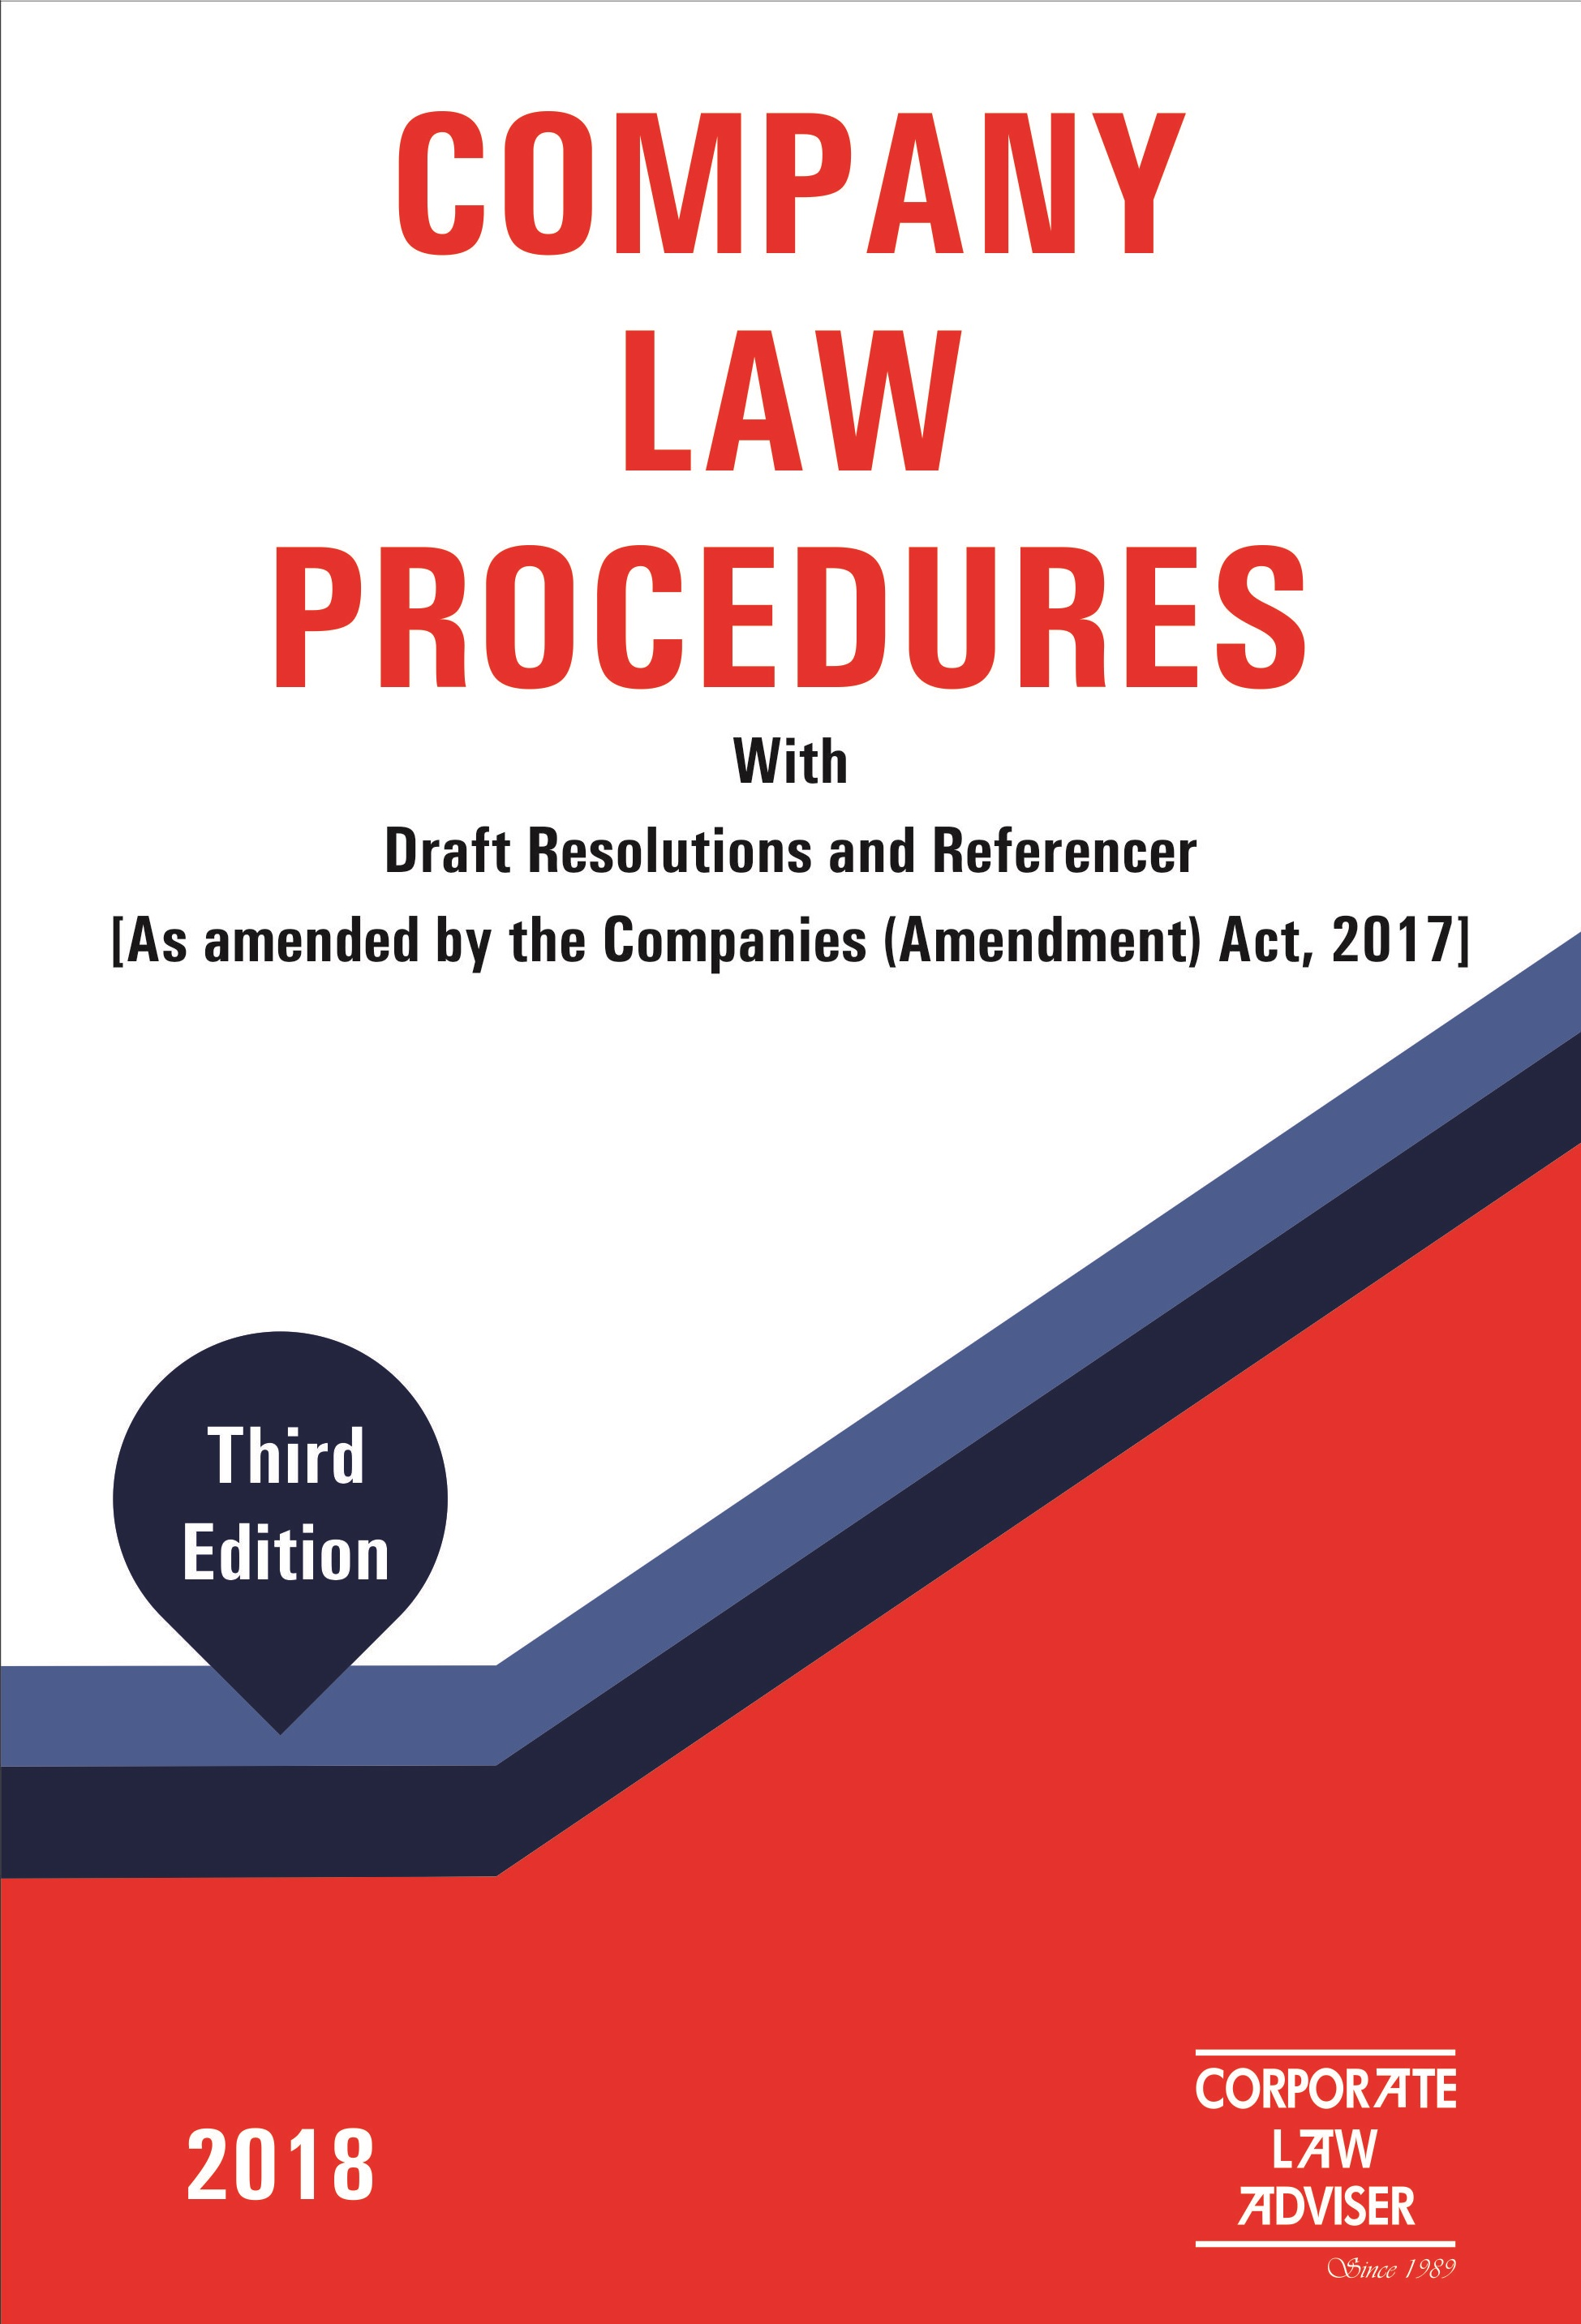 COMPANY LAW PROCEDURES